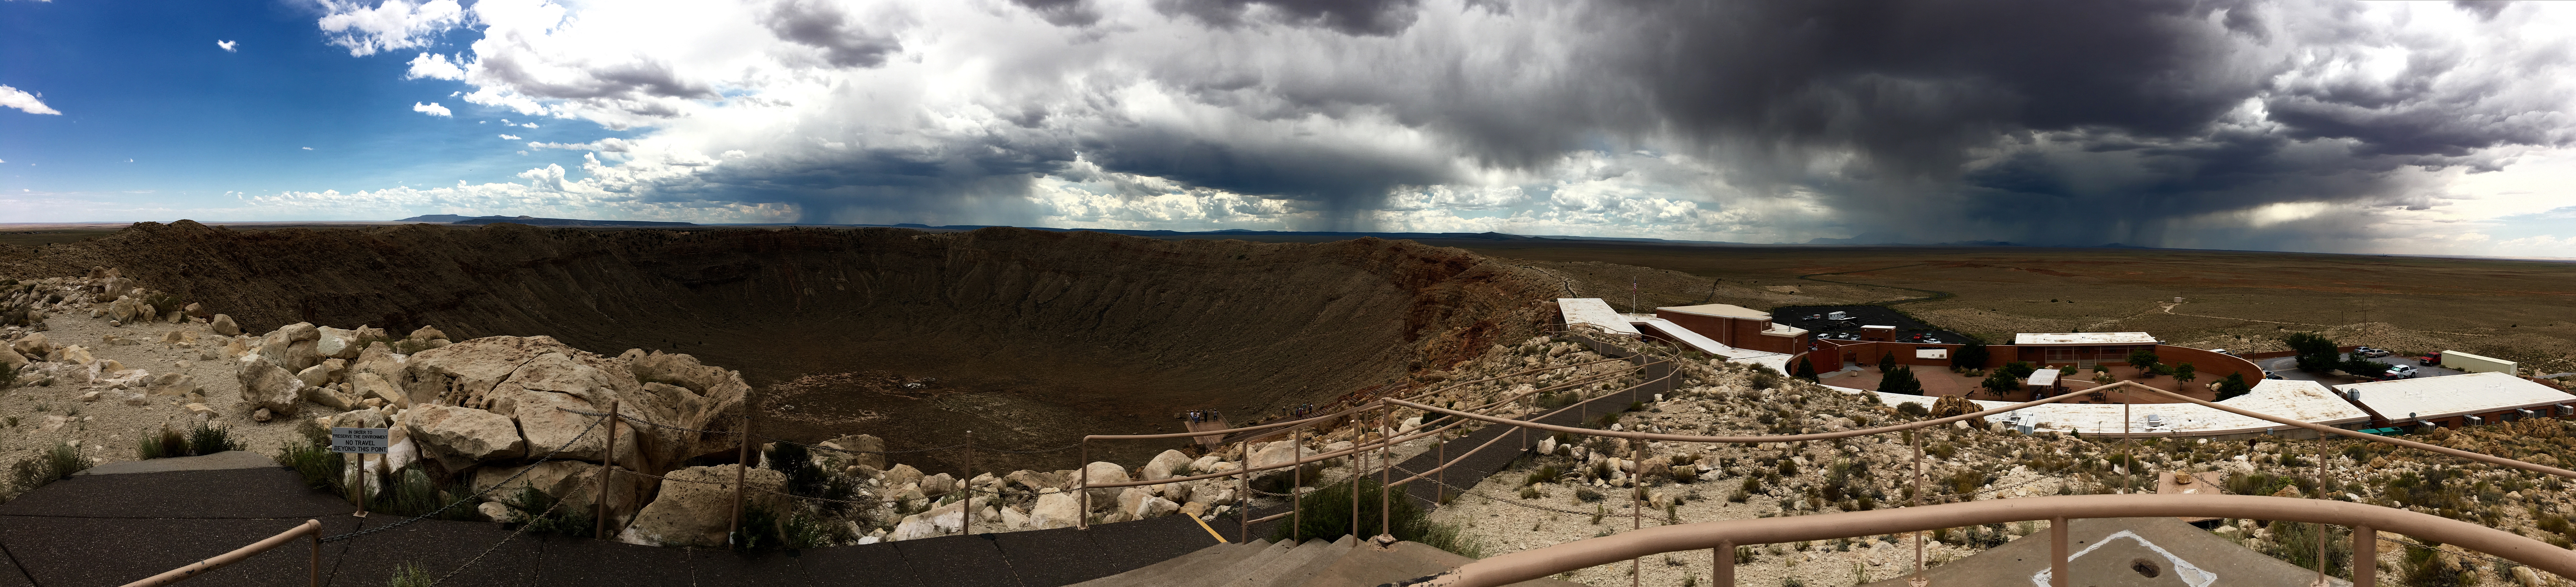 That is the Meteor Crater on the left. The Visitor Center/Museum on the right, and you can see rain in the background.